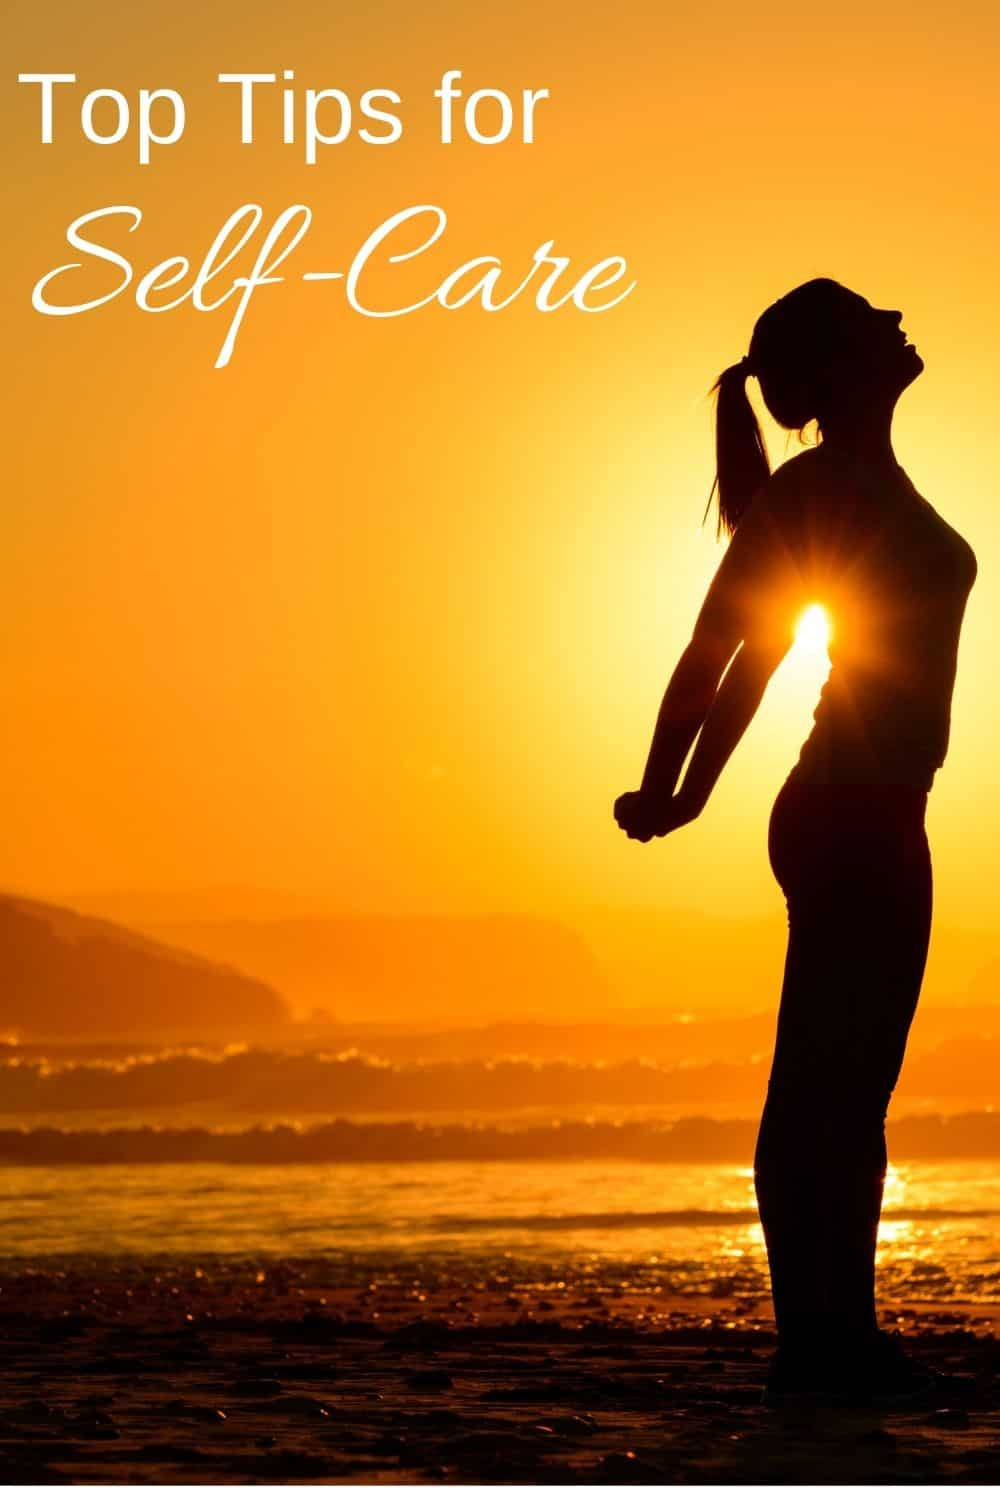 It may seem impossible to look and feel your best every day, but it is not out of your reach. You may even be so used to not functioning at 100% that you may not even notice how much your life could be improved. These self-care tips will help you live your best life.